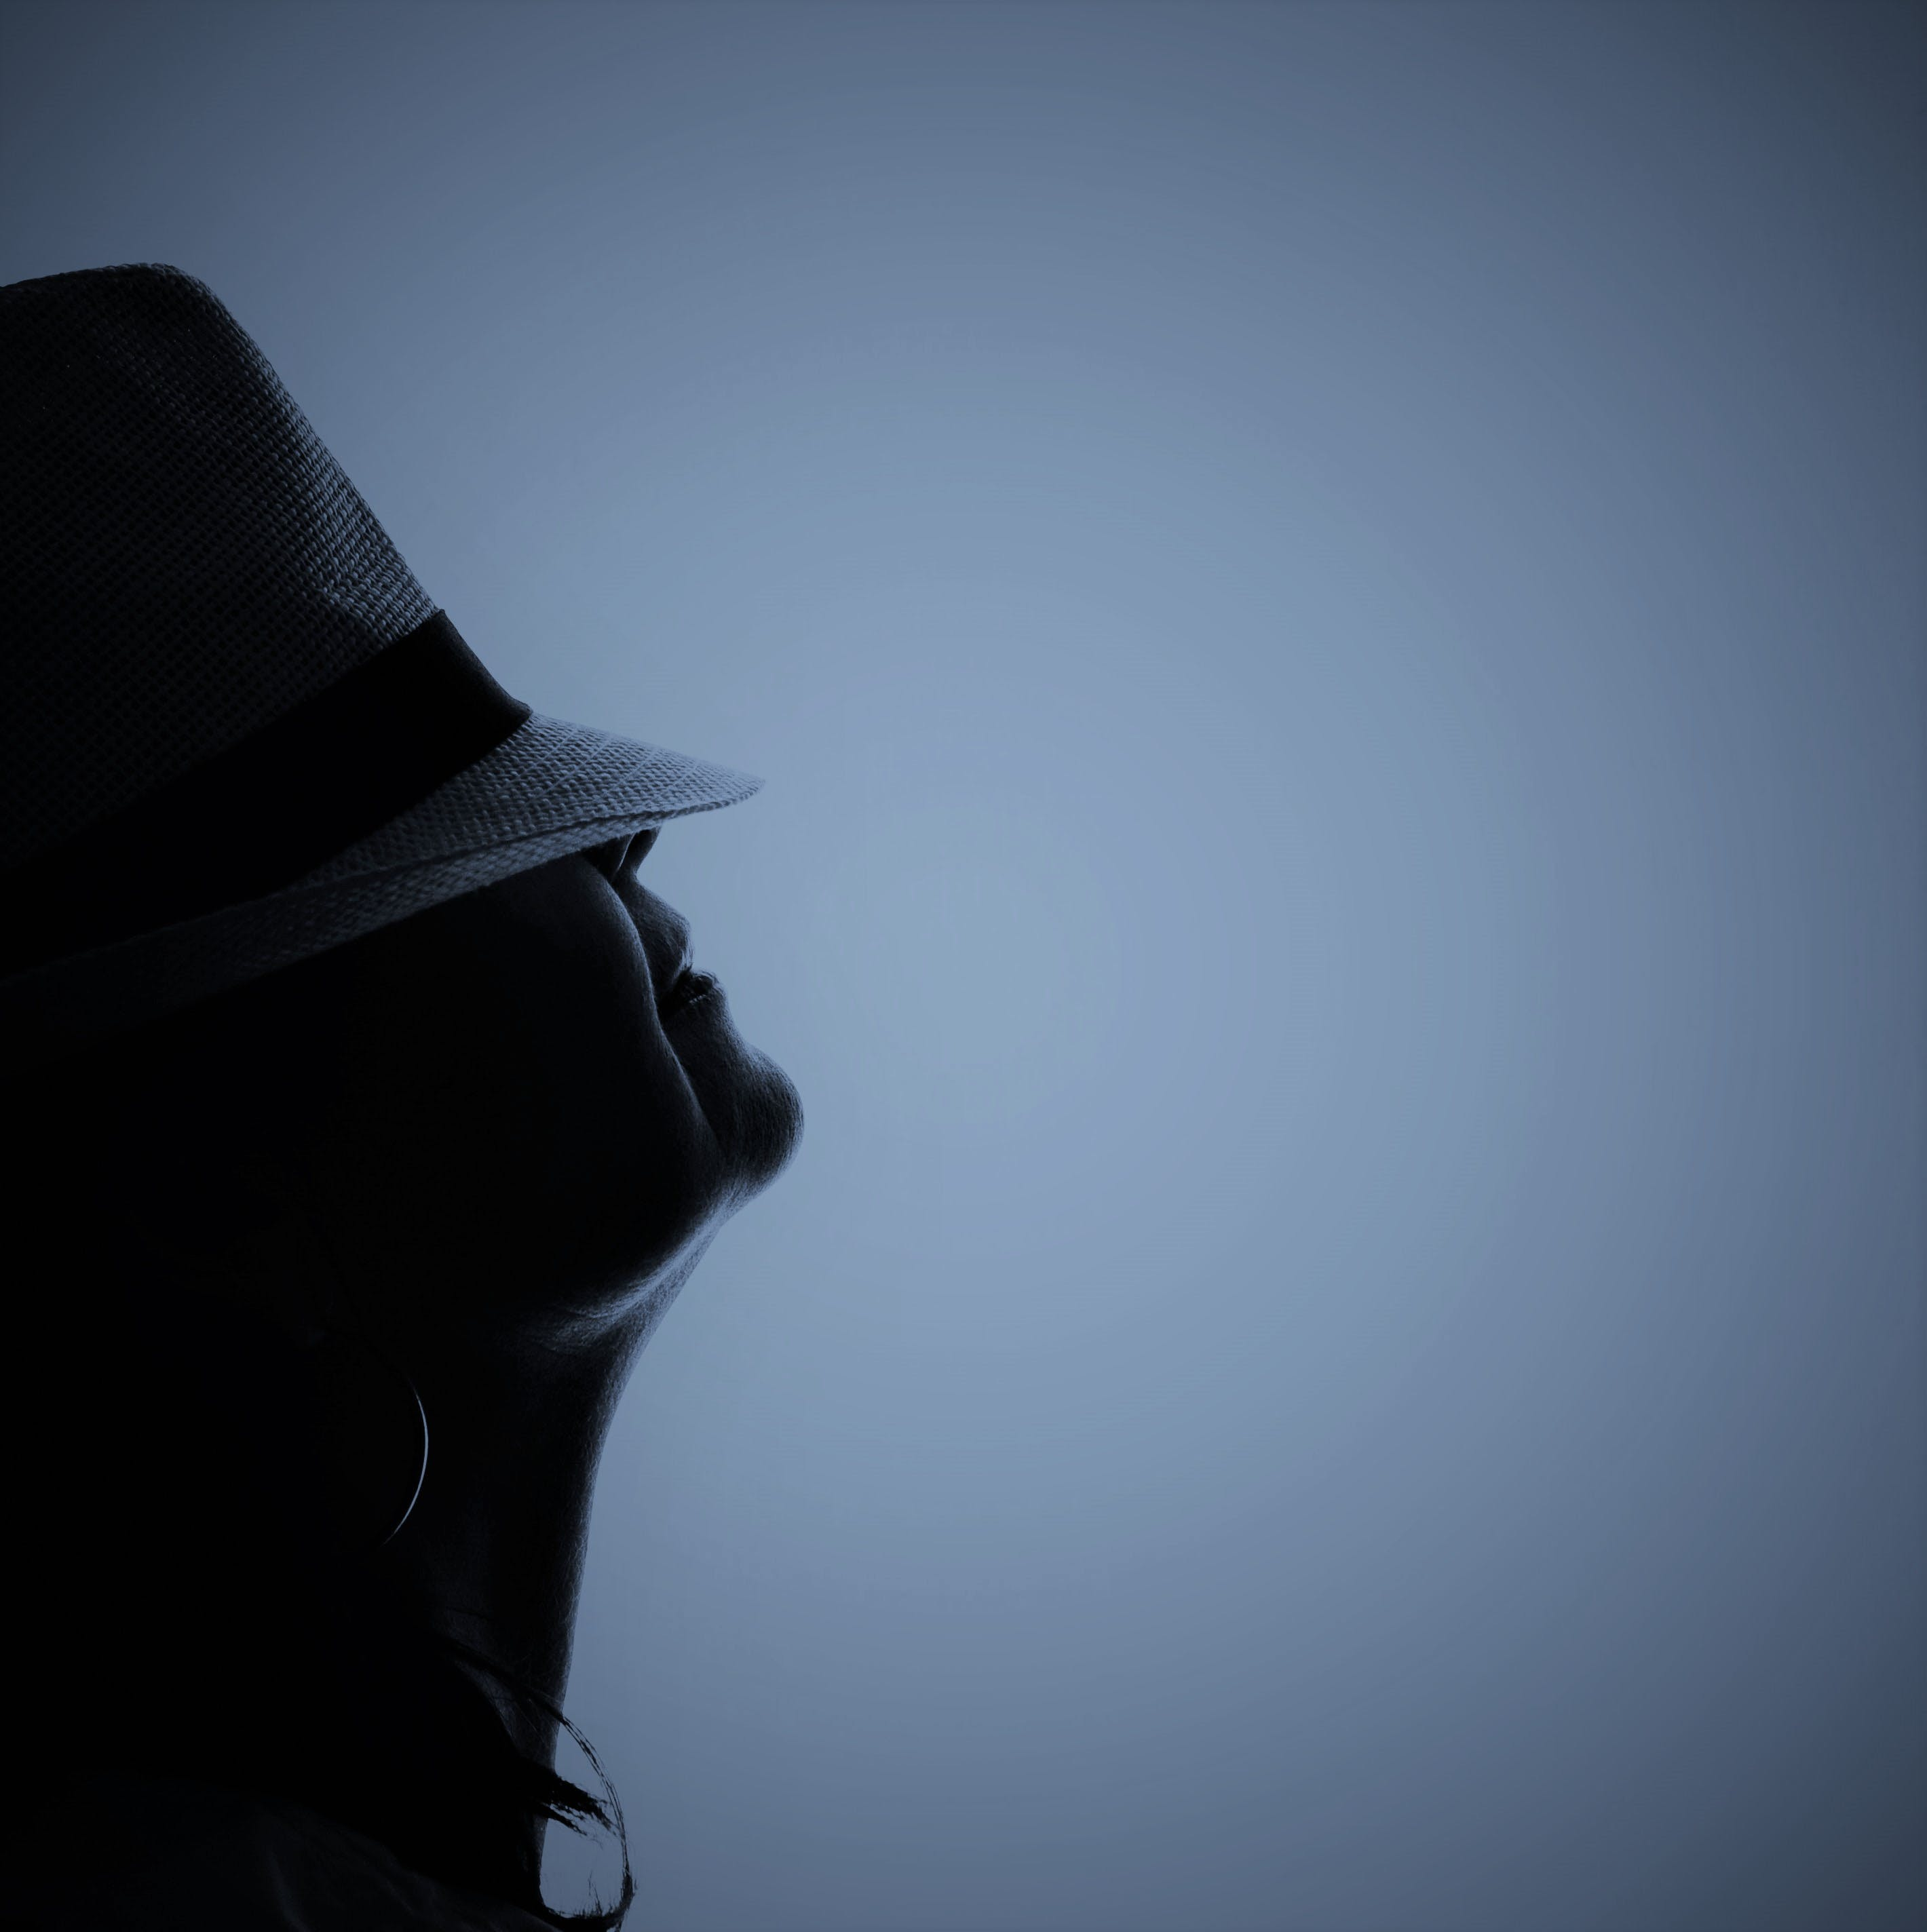 Silhouette Photo of Person Wearing Hat